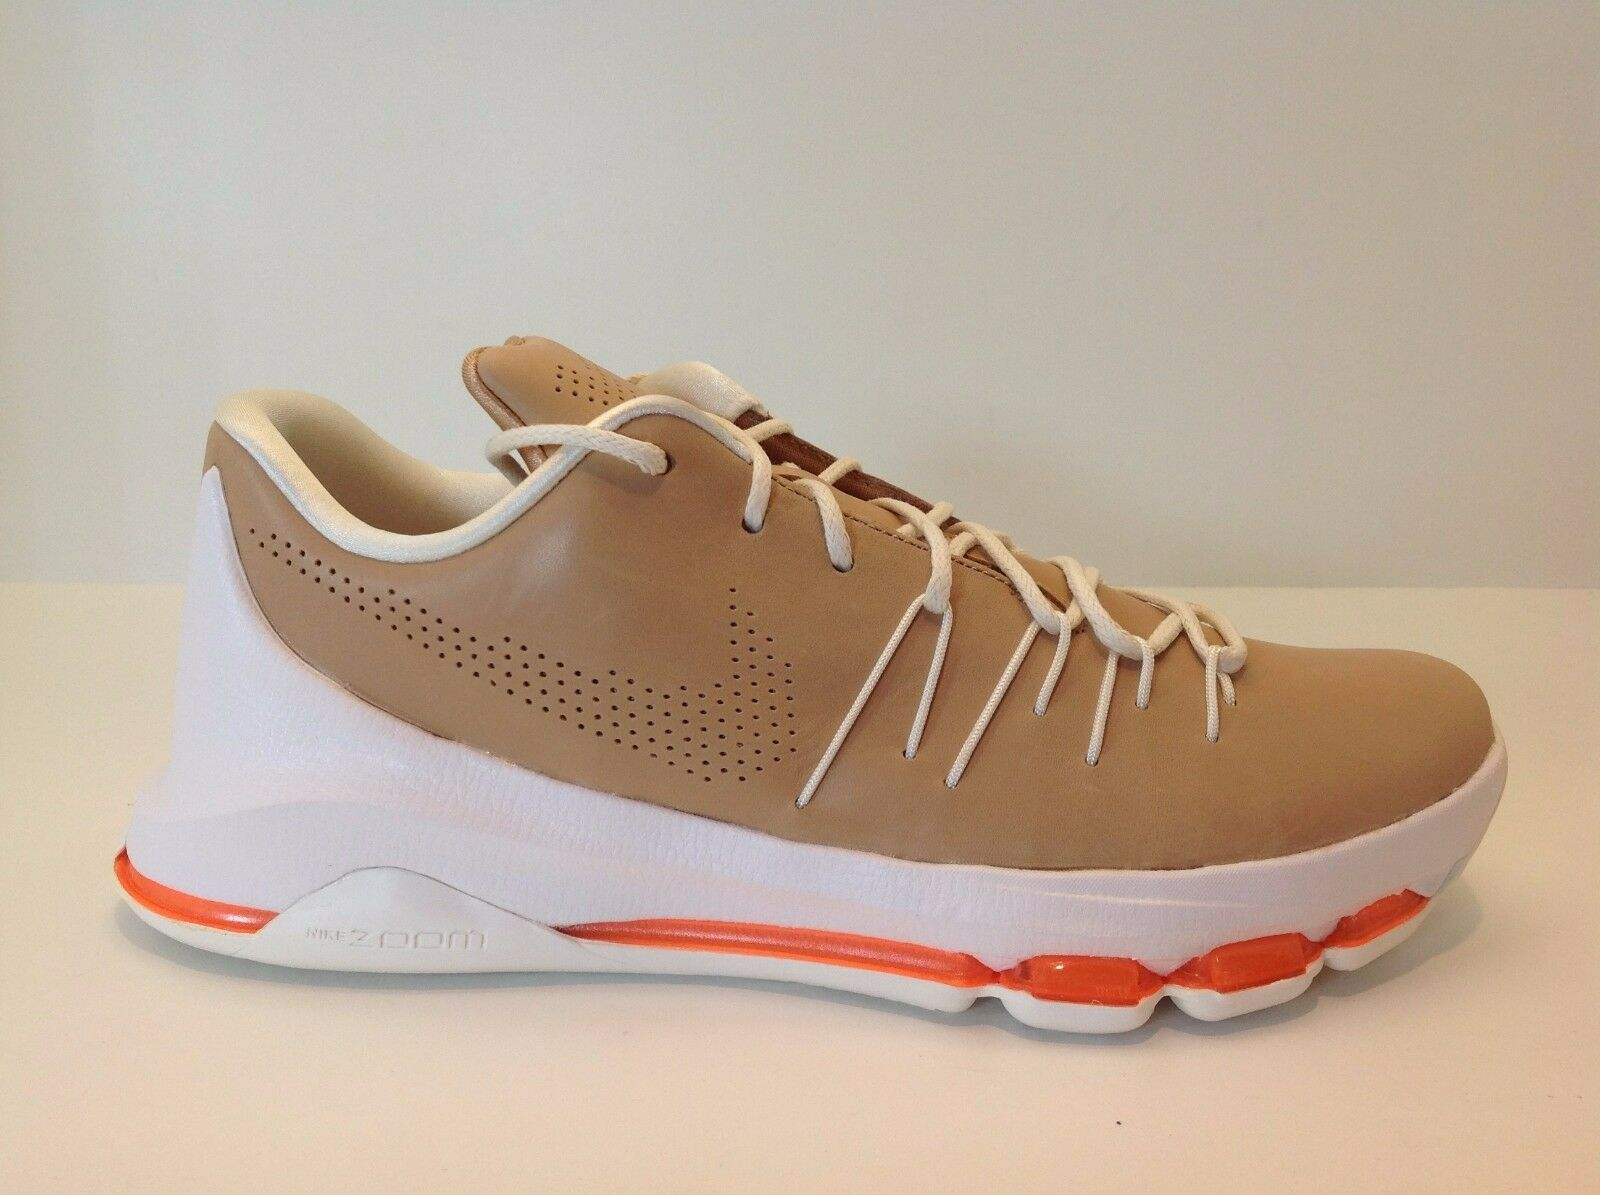 Nike KD 8 EXT Tan/Orange/White Men's Basketball Comfortable Great discount Casual wild